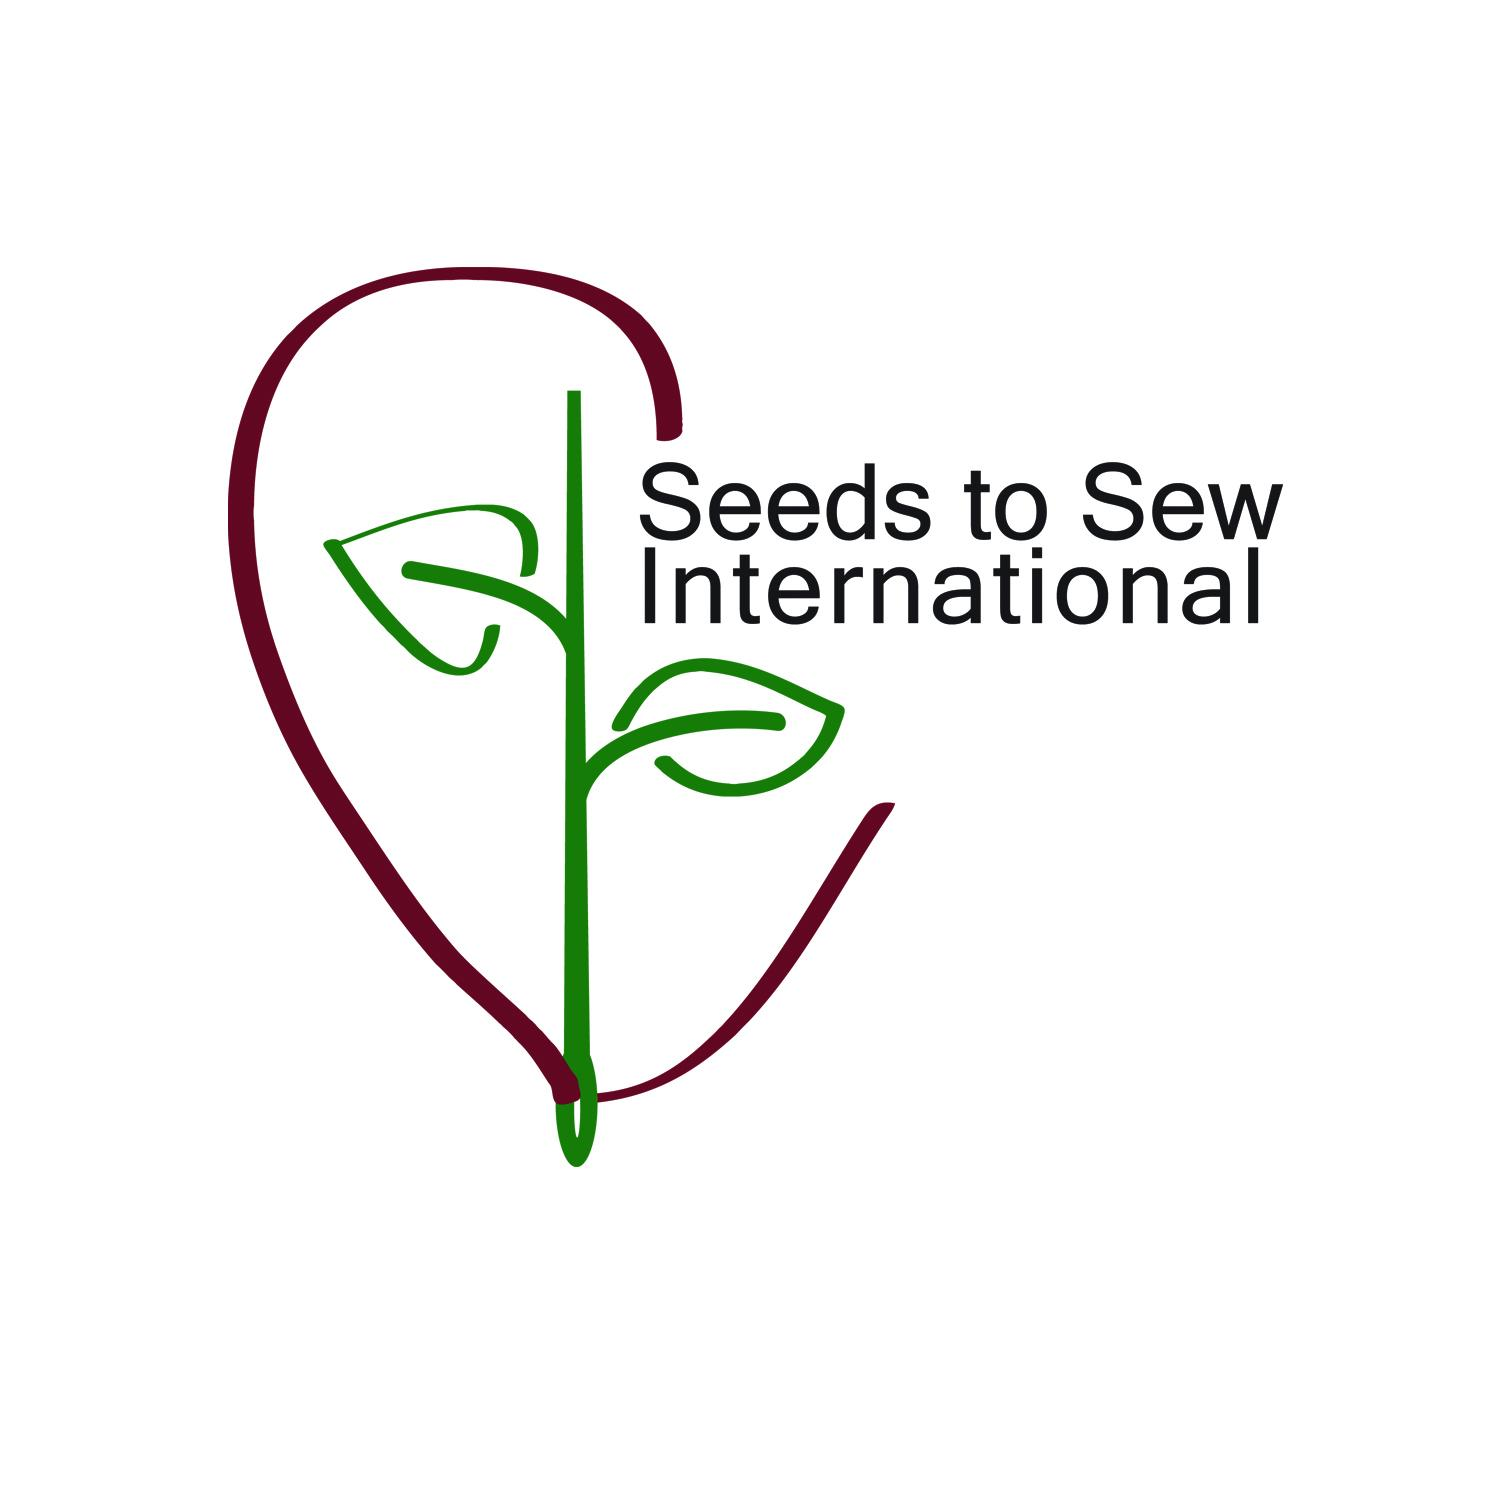 Seeds to Sew International LOGO